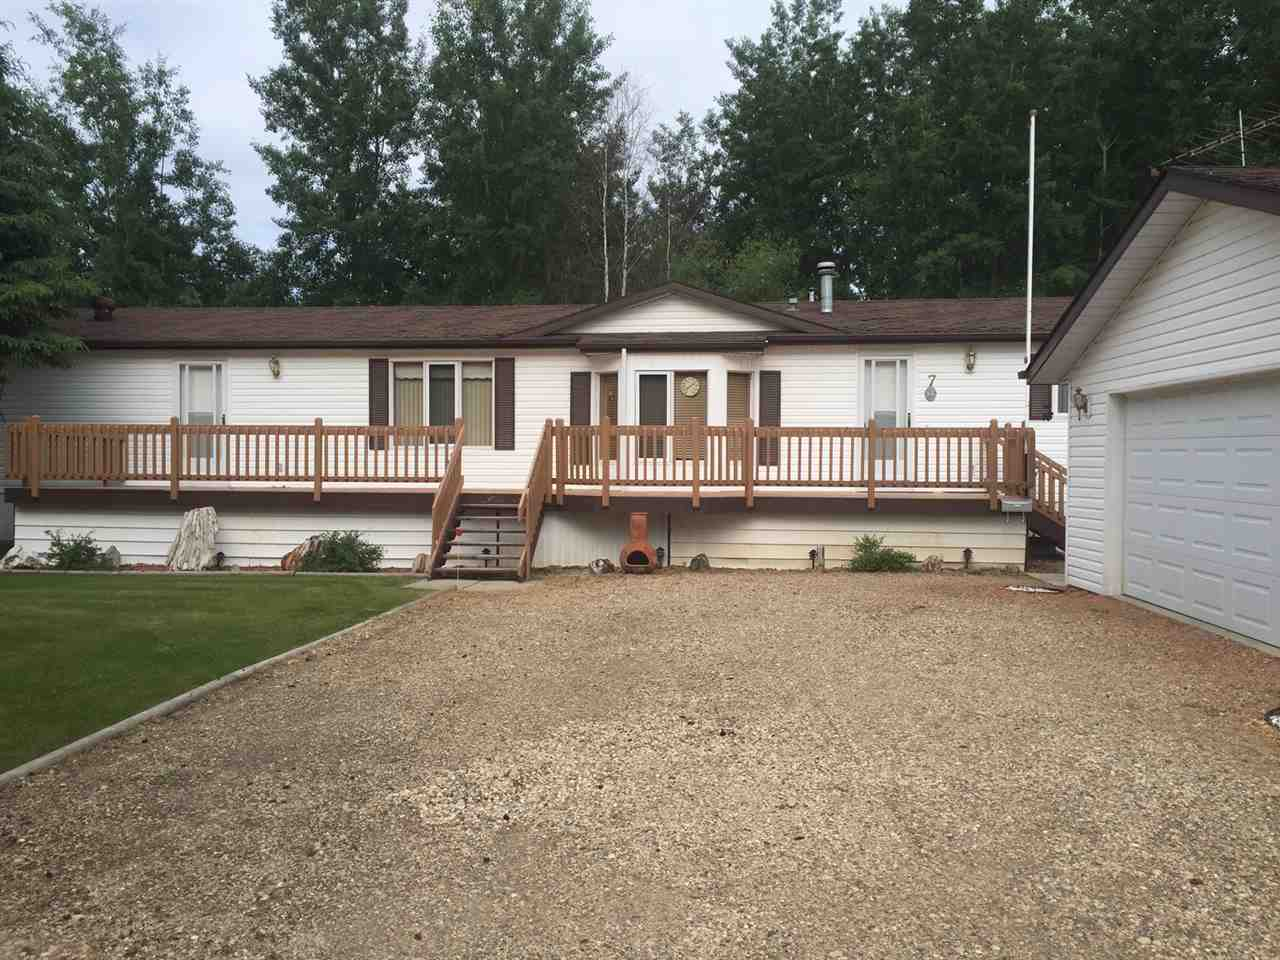 Well kept mobile in Birchwood Village Greens! This lovely mobile home sits on a 0.4 acre lot with lots of trees. The 16' wide mobile is in fabulous condition and features 3 bedrooms, an open concept floorplan and newer flooring throughout. The large kitchen has plenty of cupboards and counter space, and the skylights allow for plenty of natural light. Outside you will find a massive deck off the front and a 2nd deck off the back door, a 24x28 fully finished garage and a peaceful forested back yard. Birchwood Village Greens is located on the Birchwood golf course and the lovely Modeste Creek. Condo fee's are $68/month and include water and road maintenance.